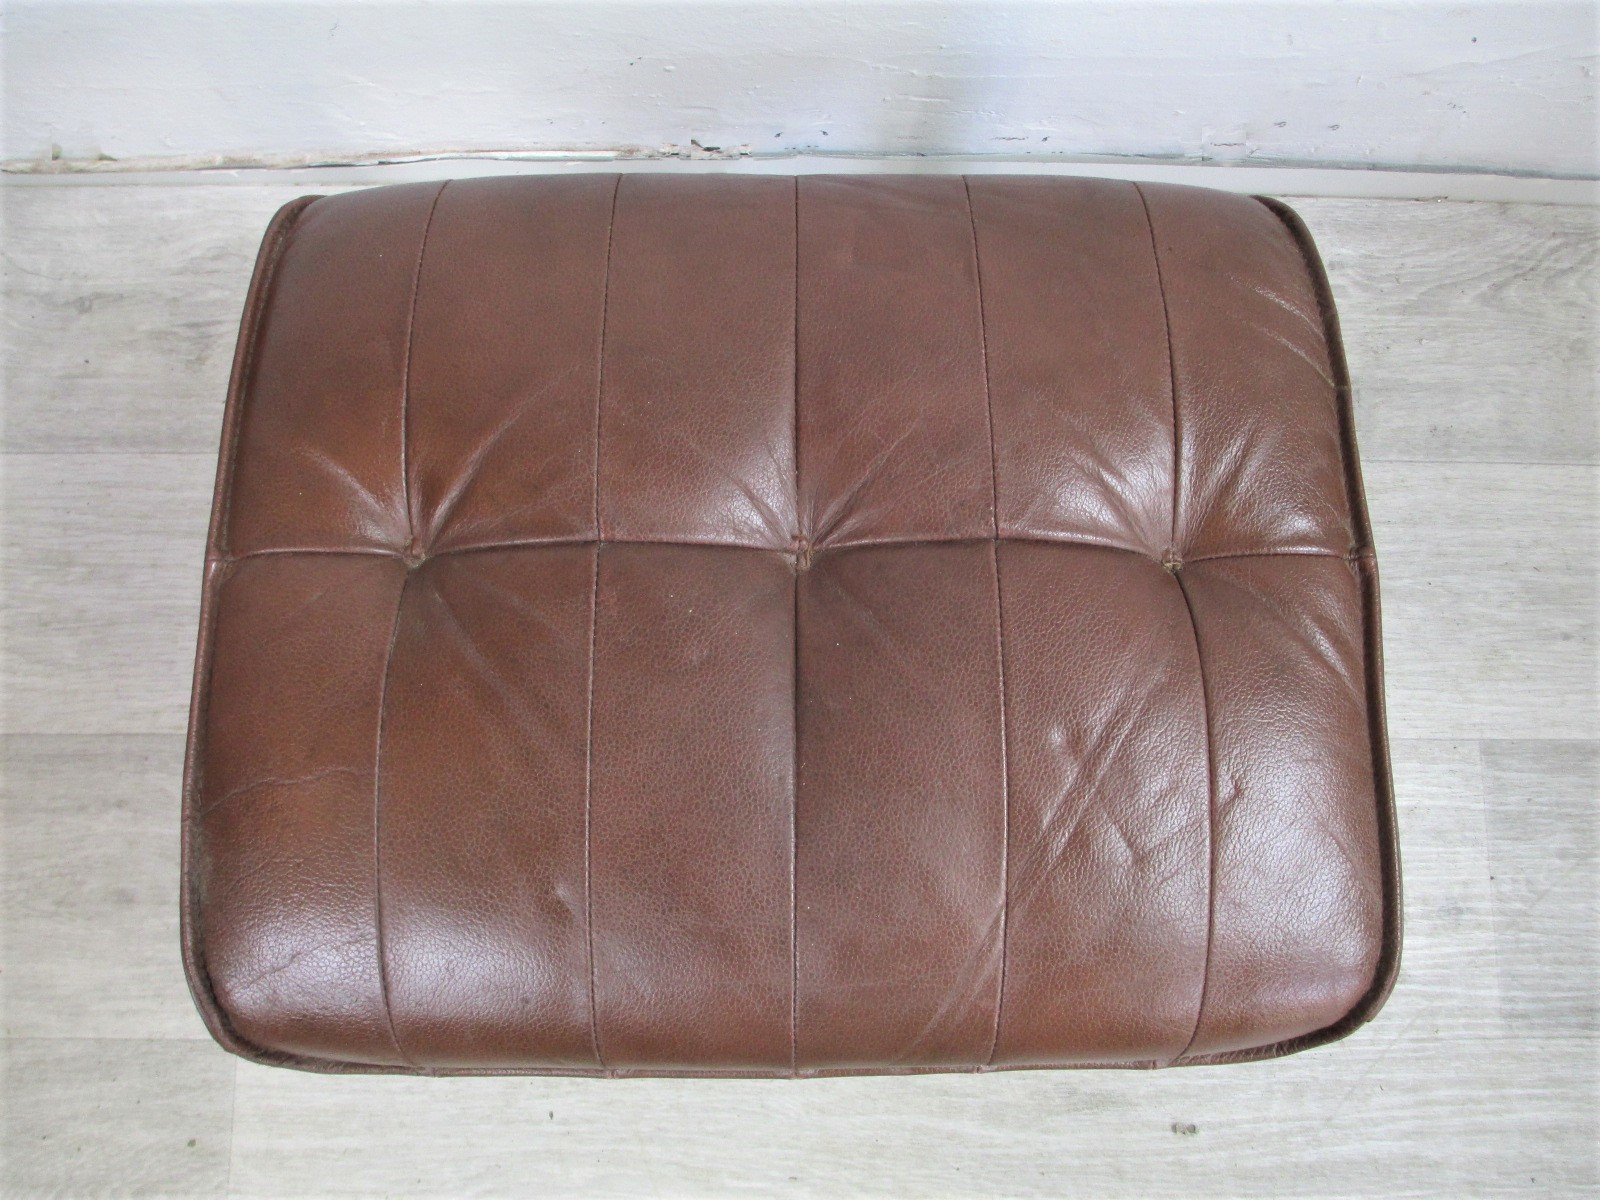 Pouffe, Unico, Denmark, 1970s - 503870 - photo